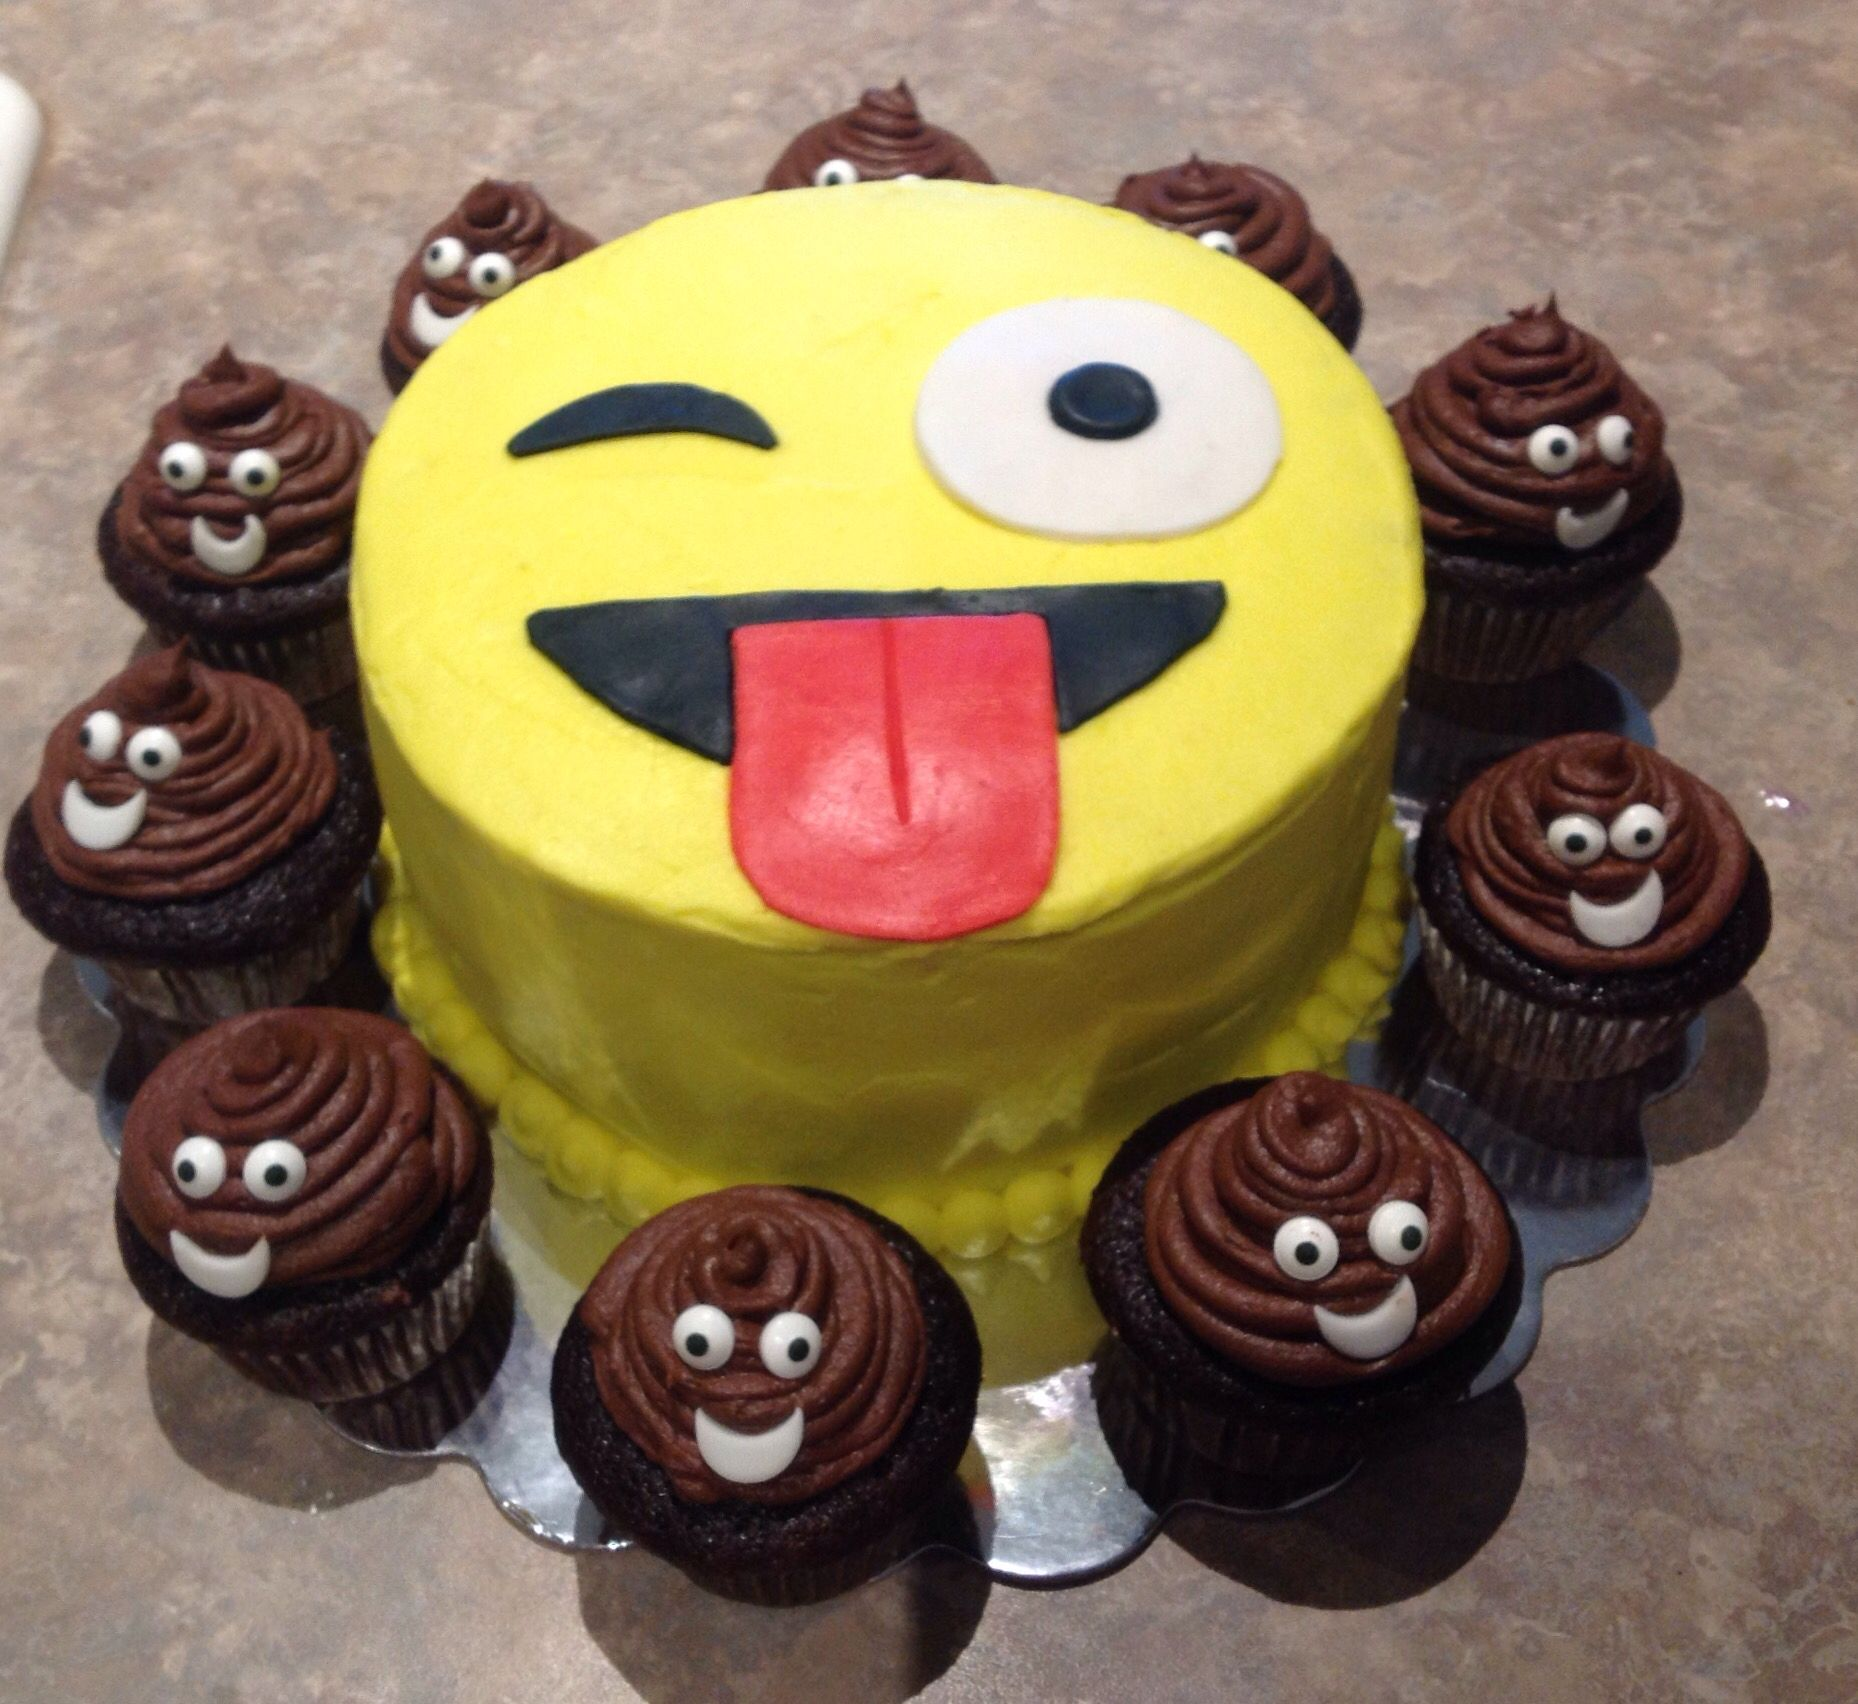 Emoji Birthday Cake Wemoji Poop Cupcakes Birthday Ideas - 10th birthday cake